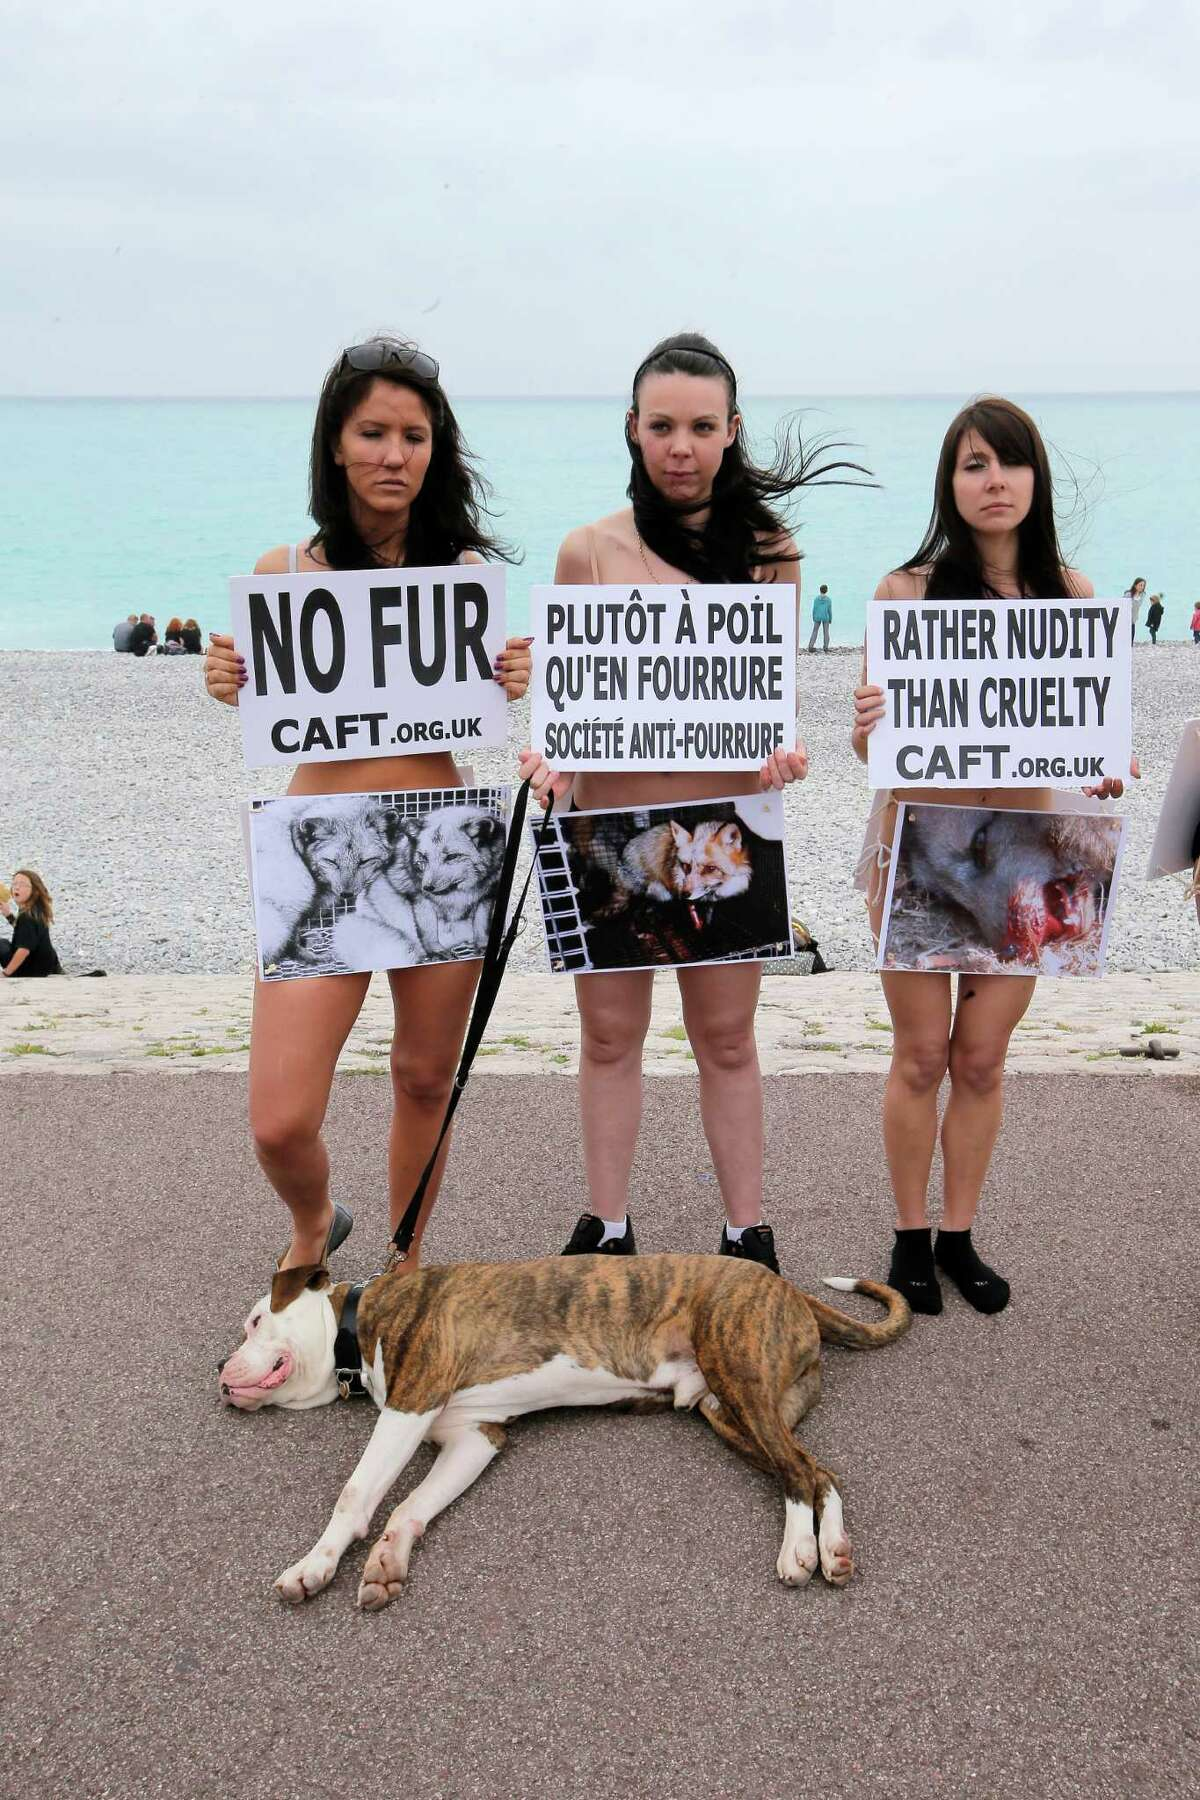 Members of the French branch of the international anti-fur group